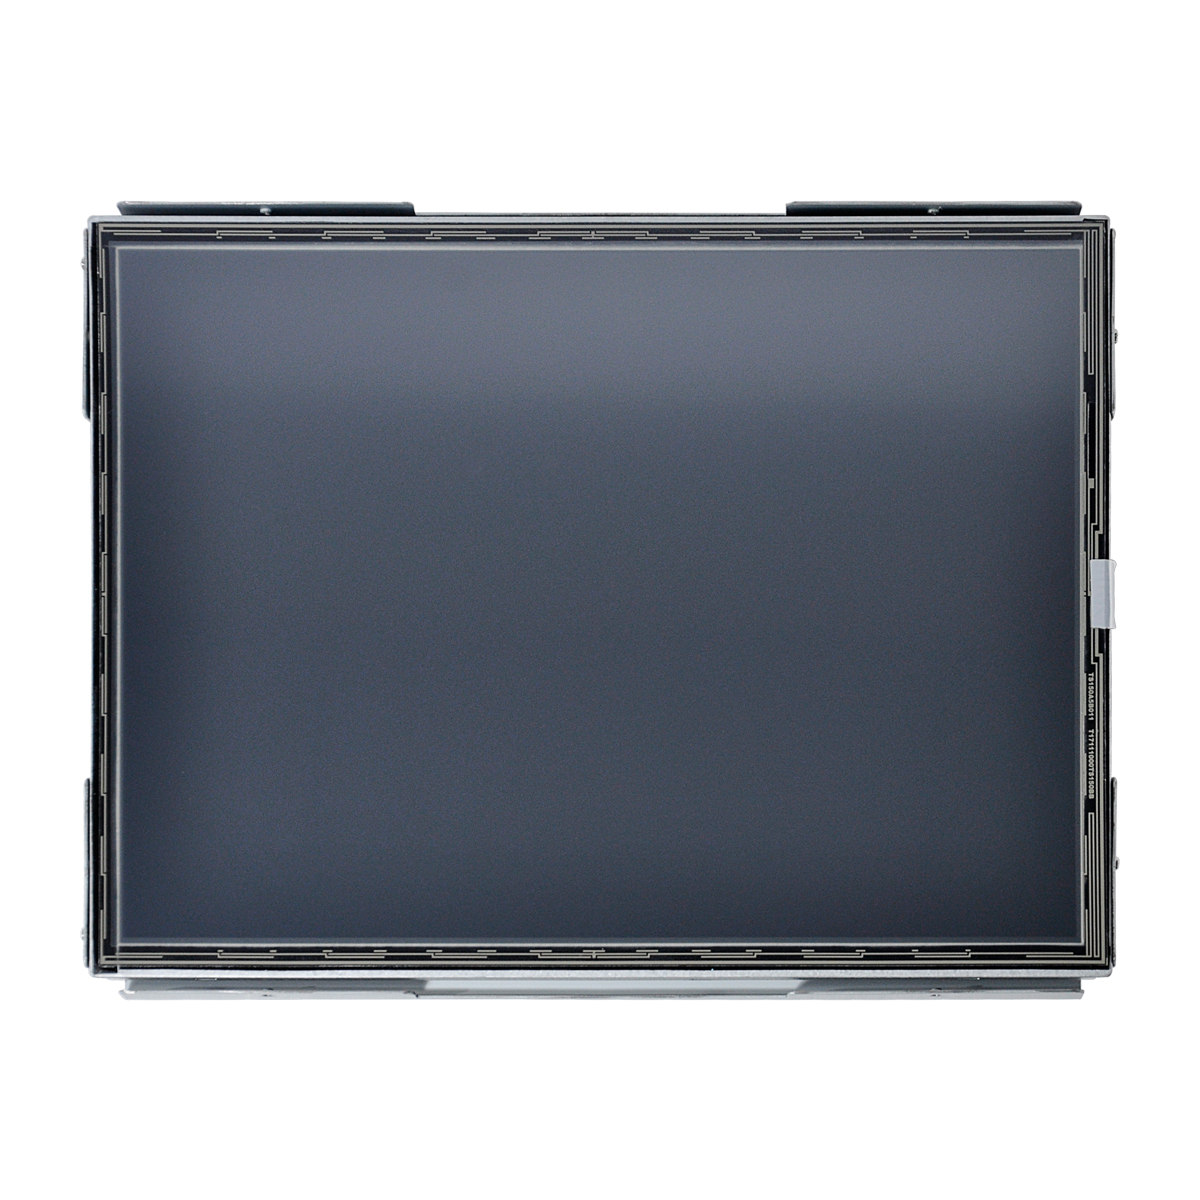 15.1 inch Embedded 5 Wire Resistive Touch Screen Panel Display Monitor COT151N-URE01